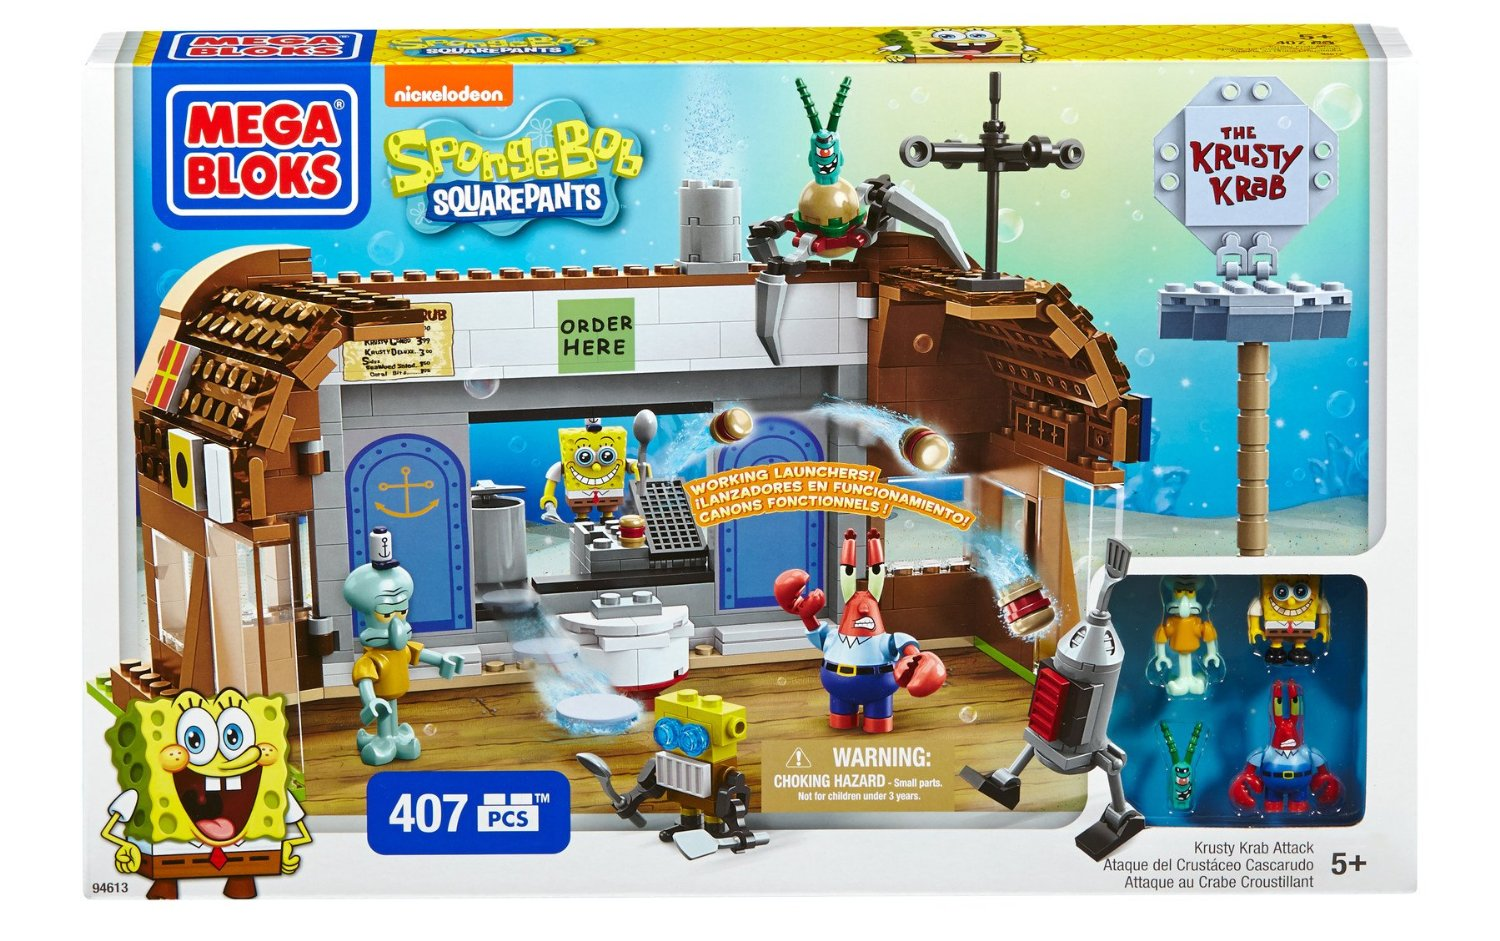 mega bloks spongebob squarepants encyclopedia spongebobia